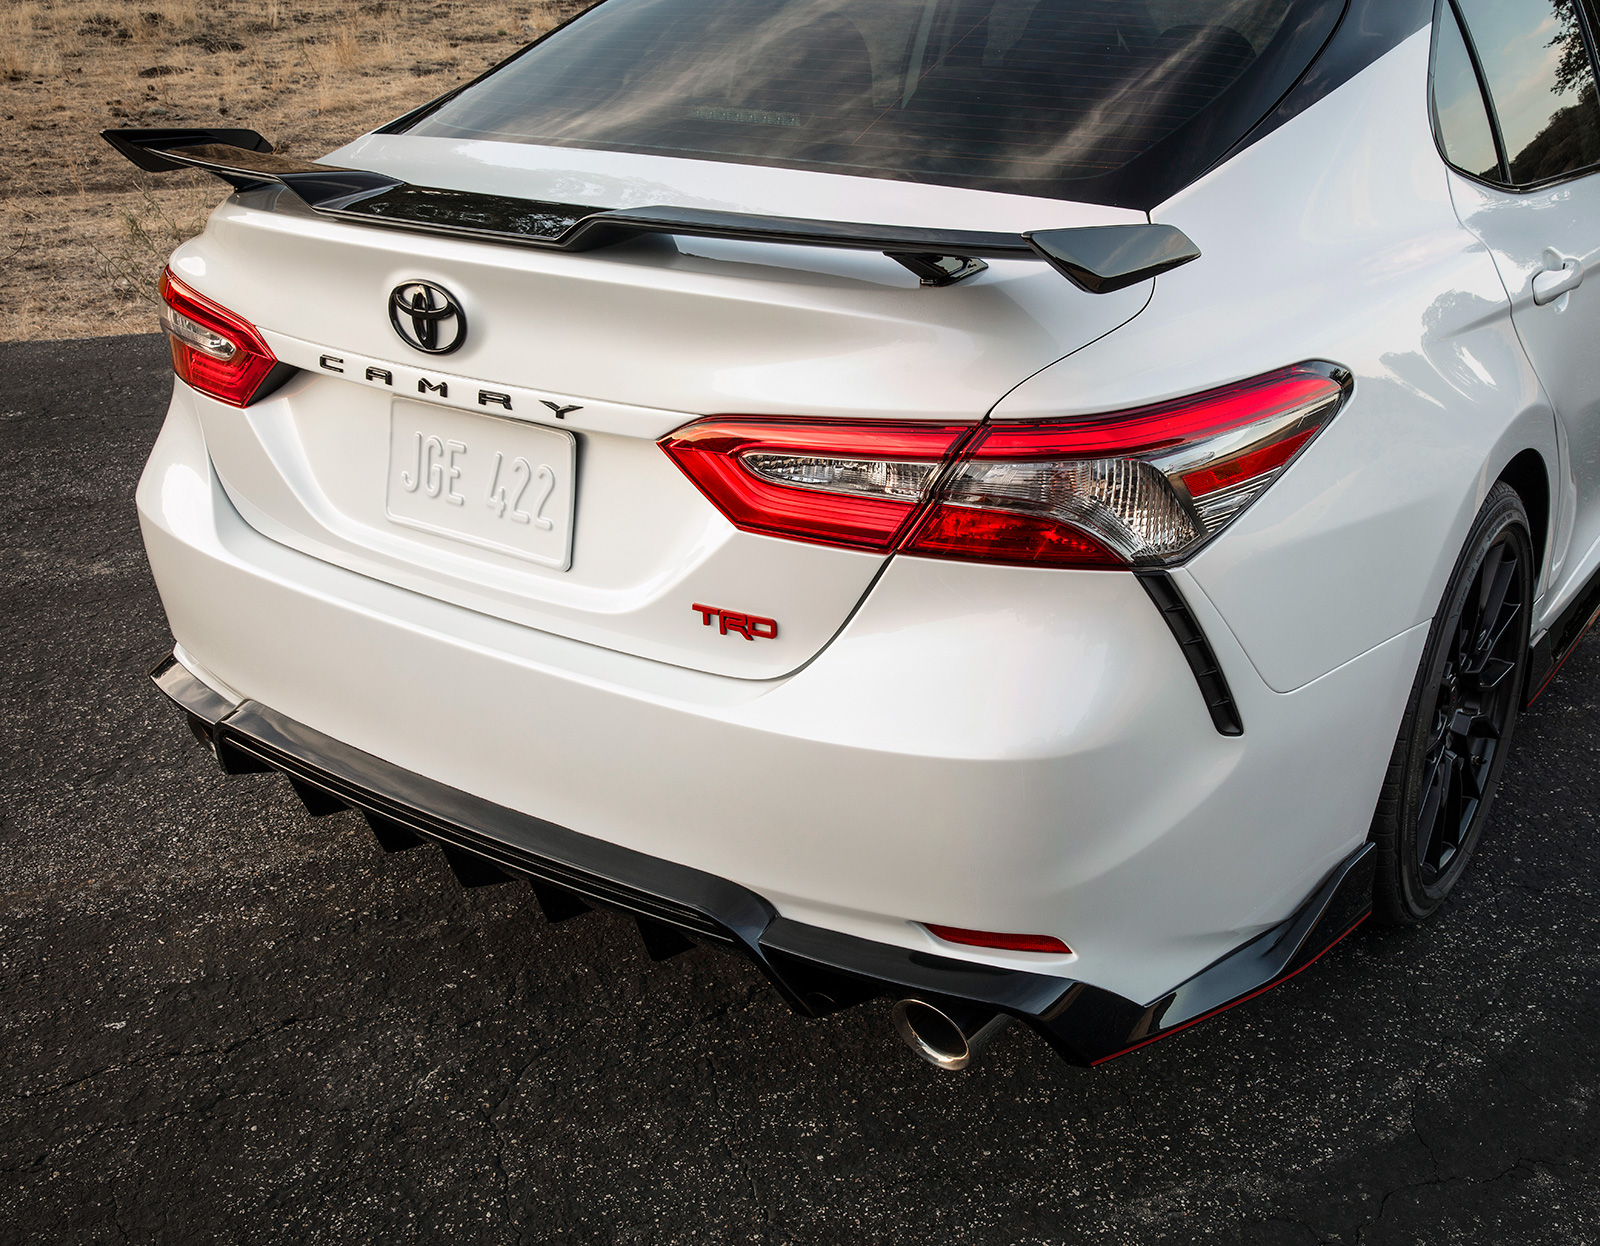 Model Features of the 2020 Toyota Camry at Tri County Toyota | The rear view of 2020 Camry TRD